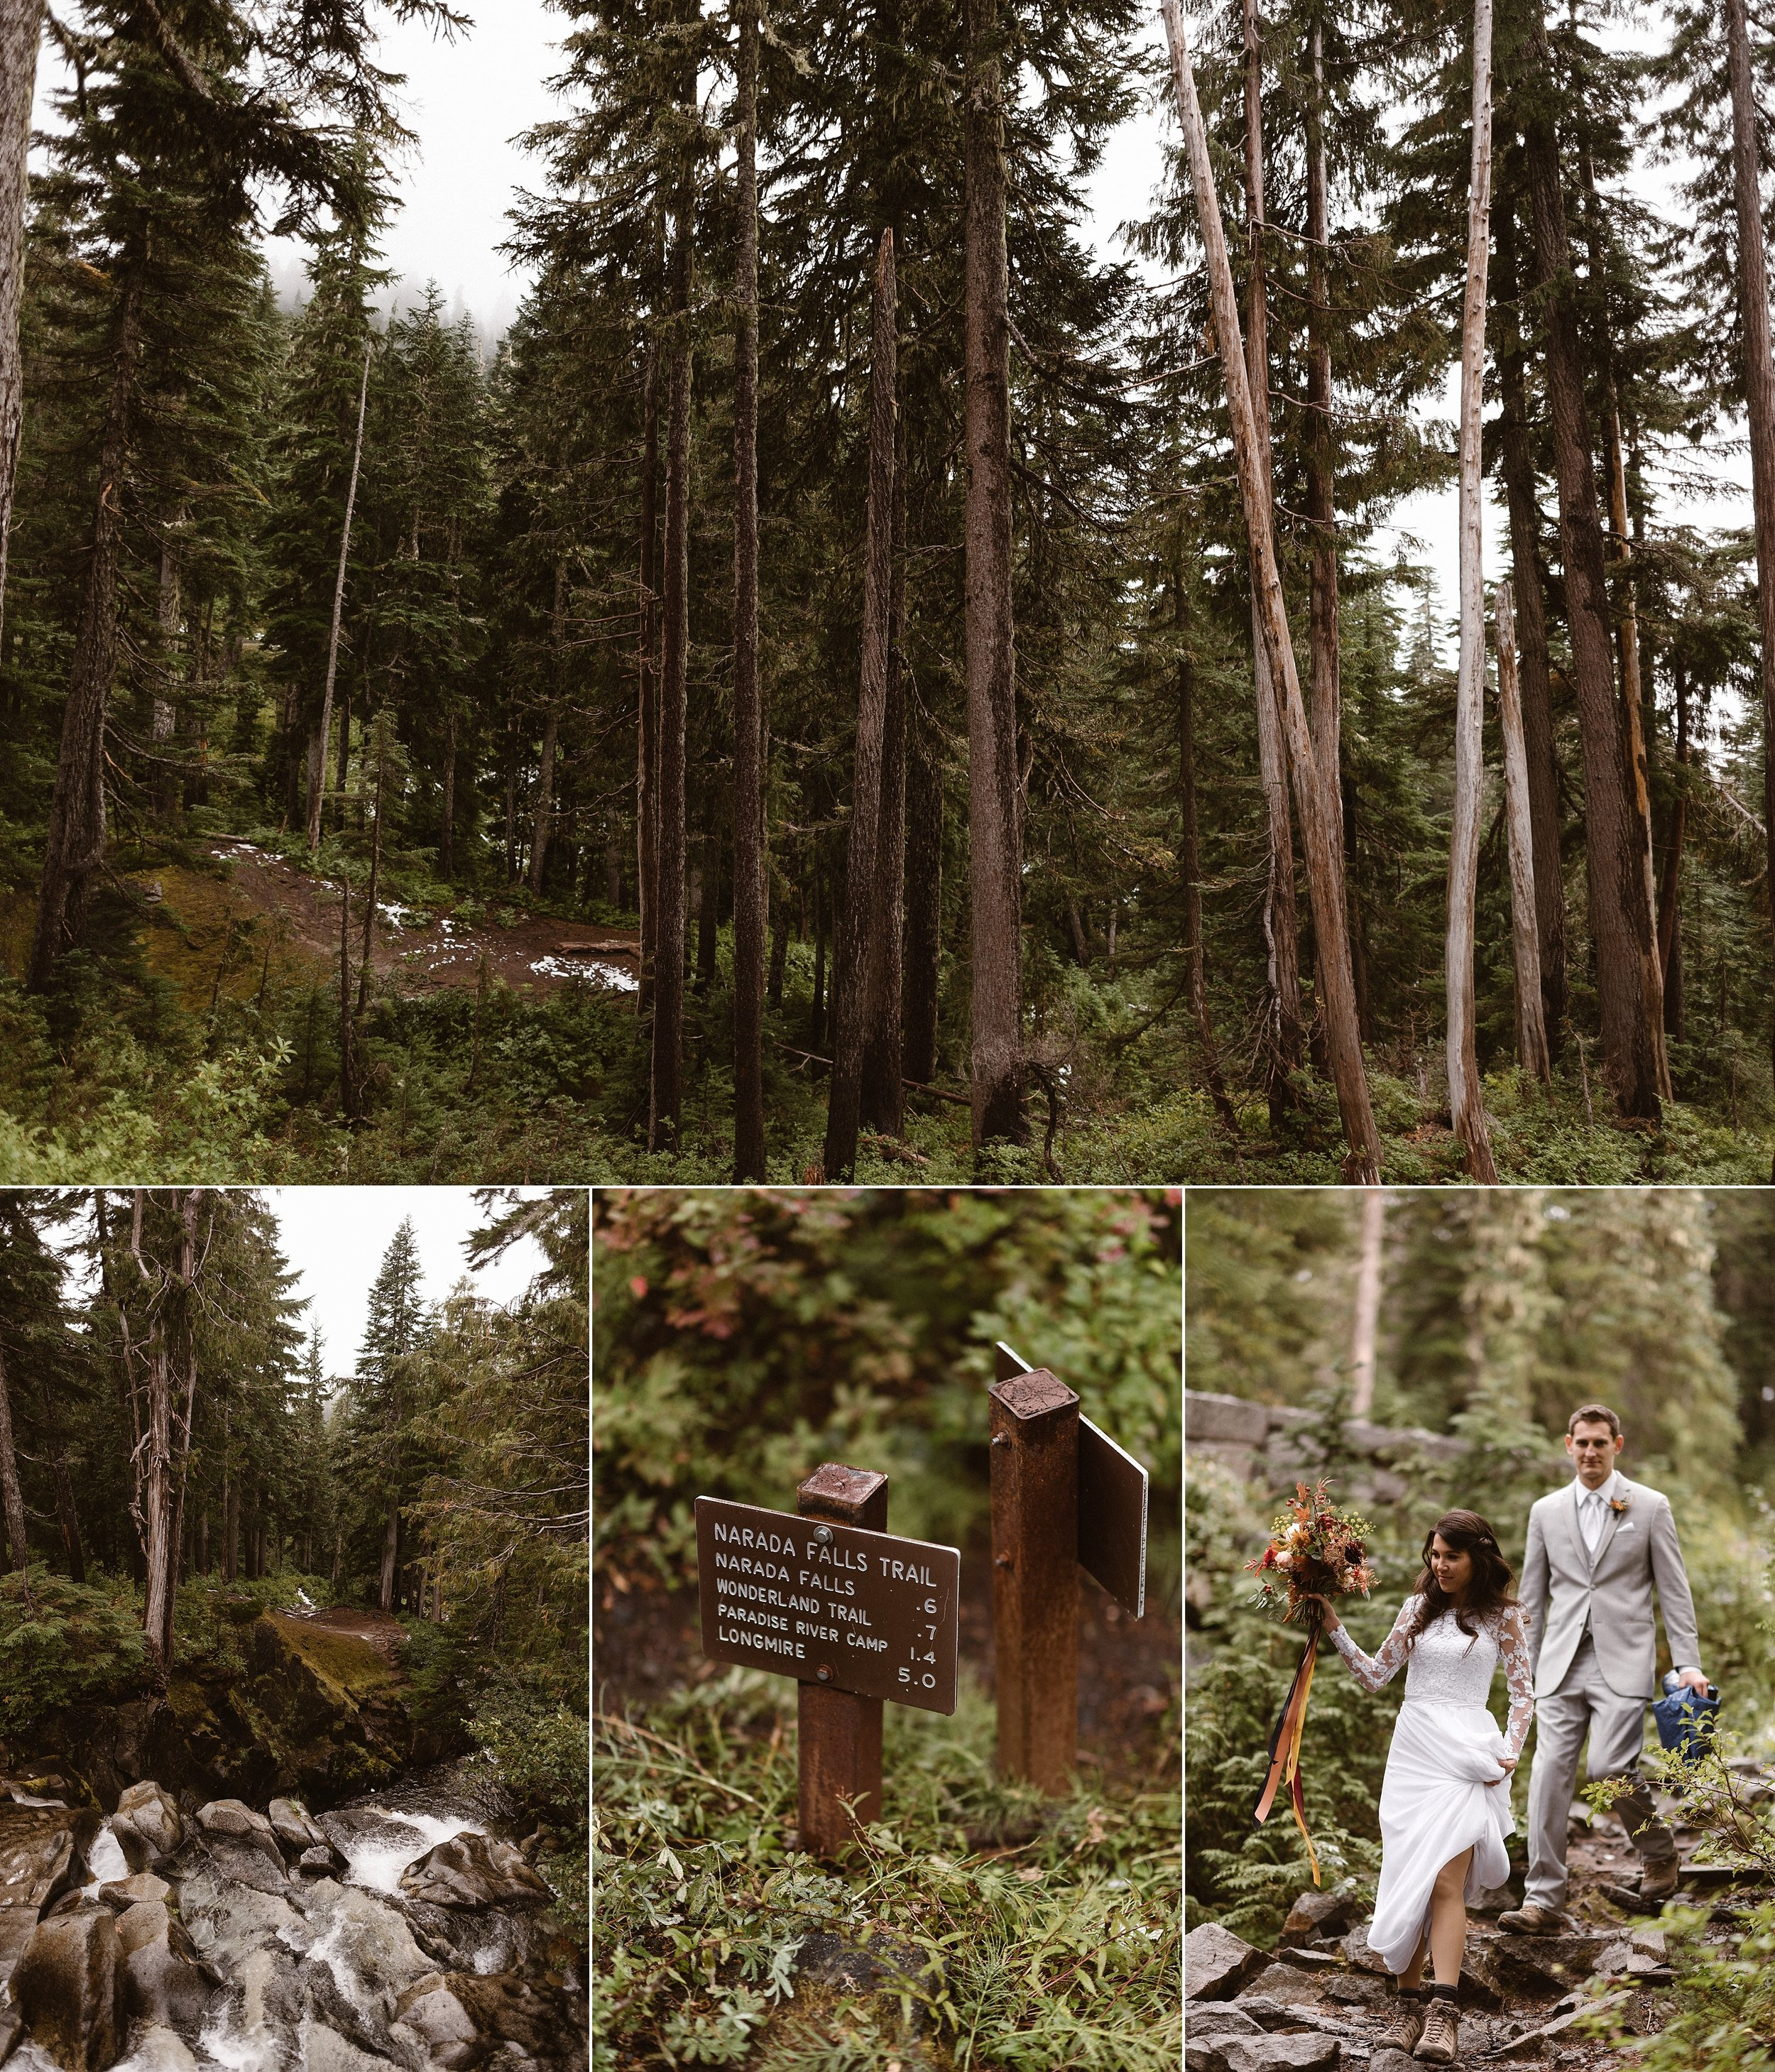 They hiked away from the clearing in their wedding clothes and headed down Wonderland Trail in Mount Rainier National Park for their private wedding ceremony in the woods. Resa and Grant were joined by only two of their closest friends and their intimate traveling wedding photographer Maddie Mae.